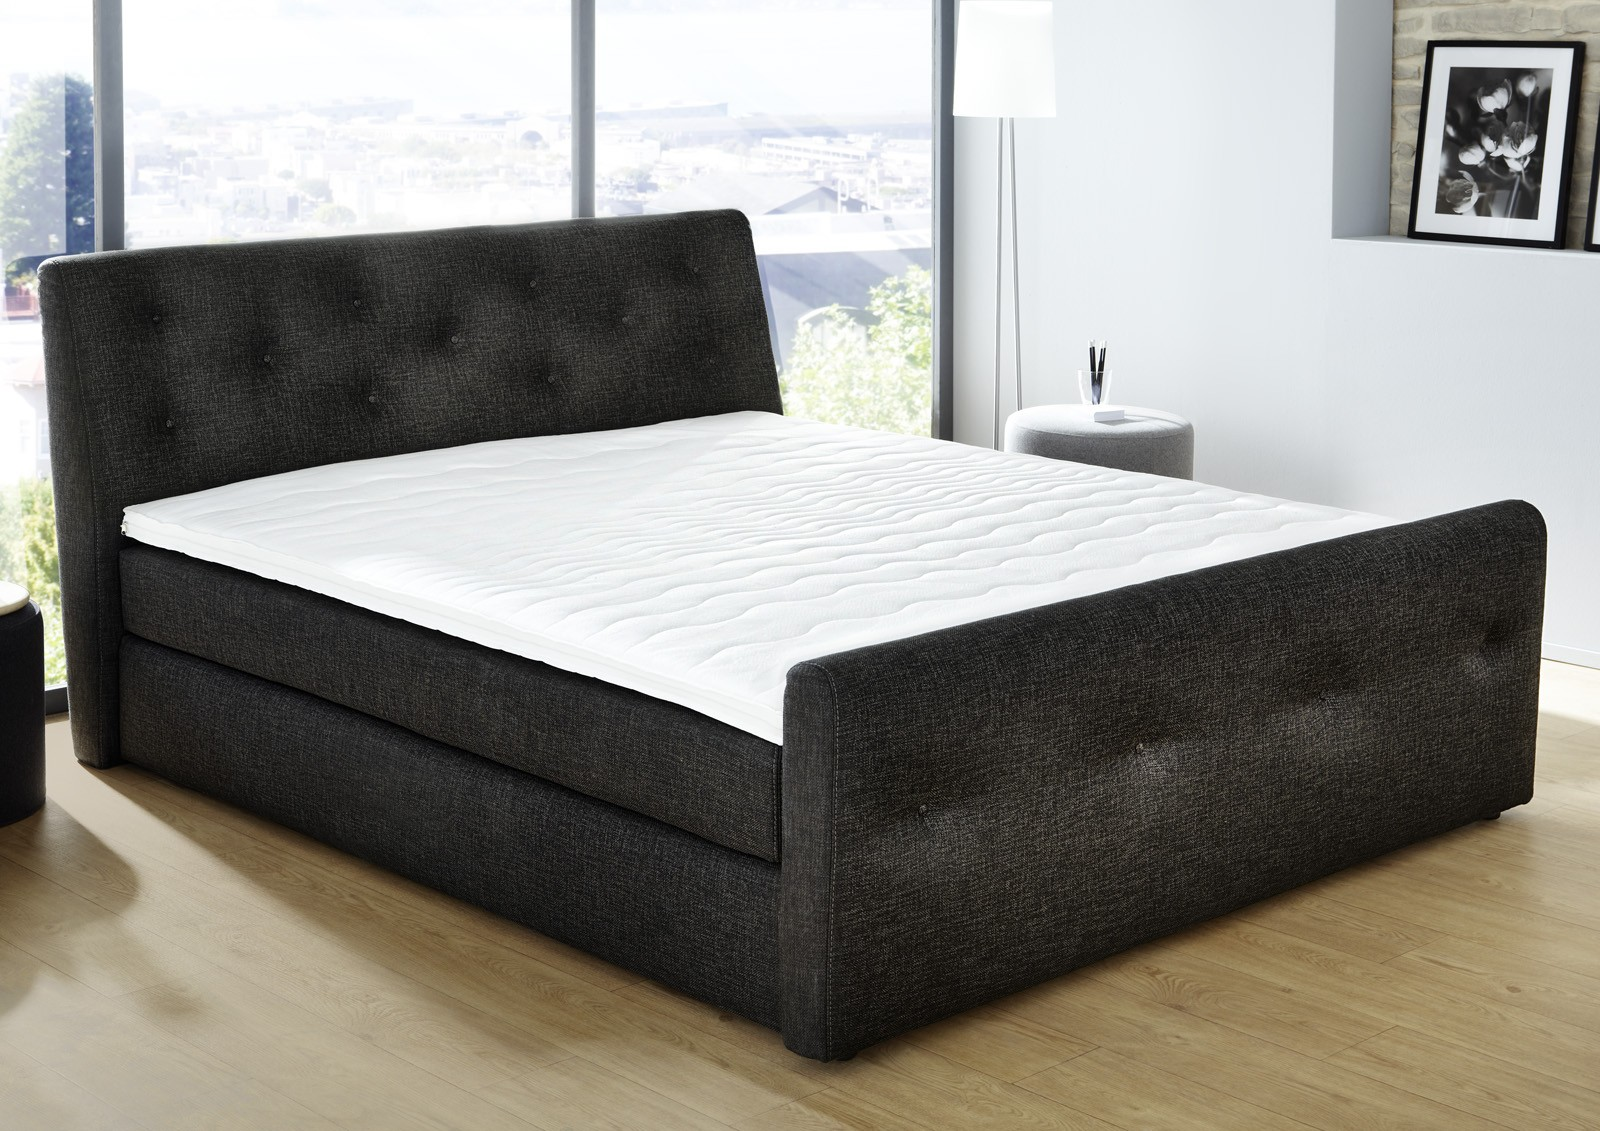 boxspringbett 180x200 m bel einebinsenweisheit. Black Bedroom Furniture Sets. Home Design Ideas